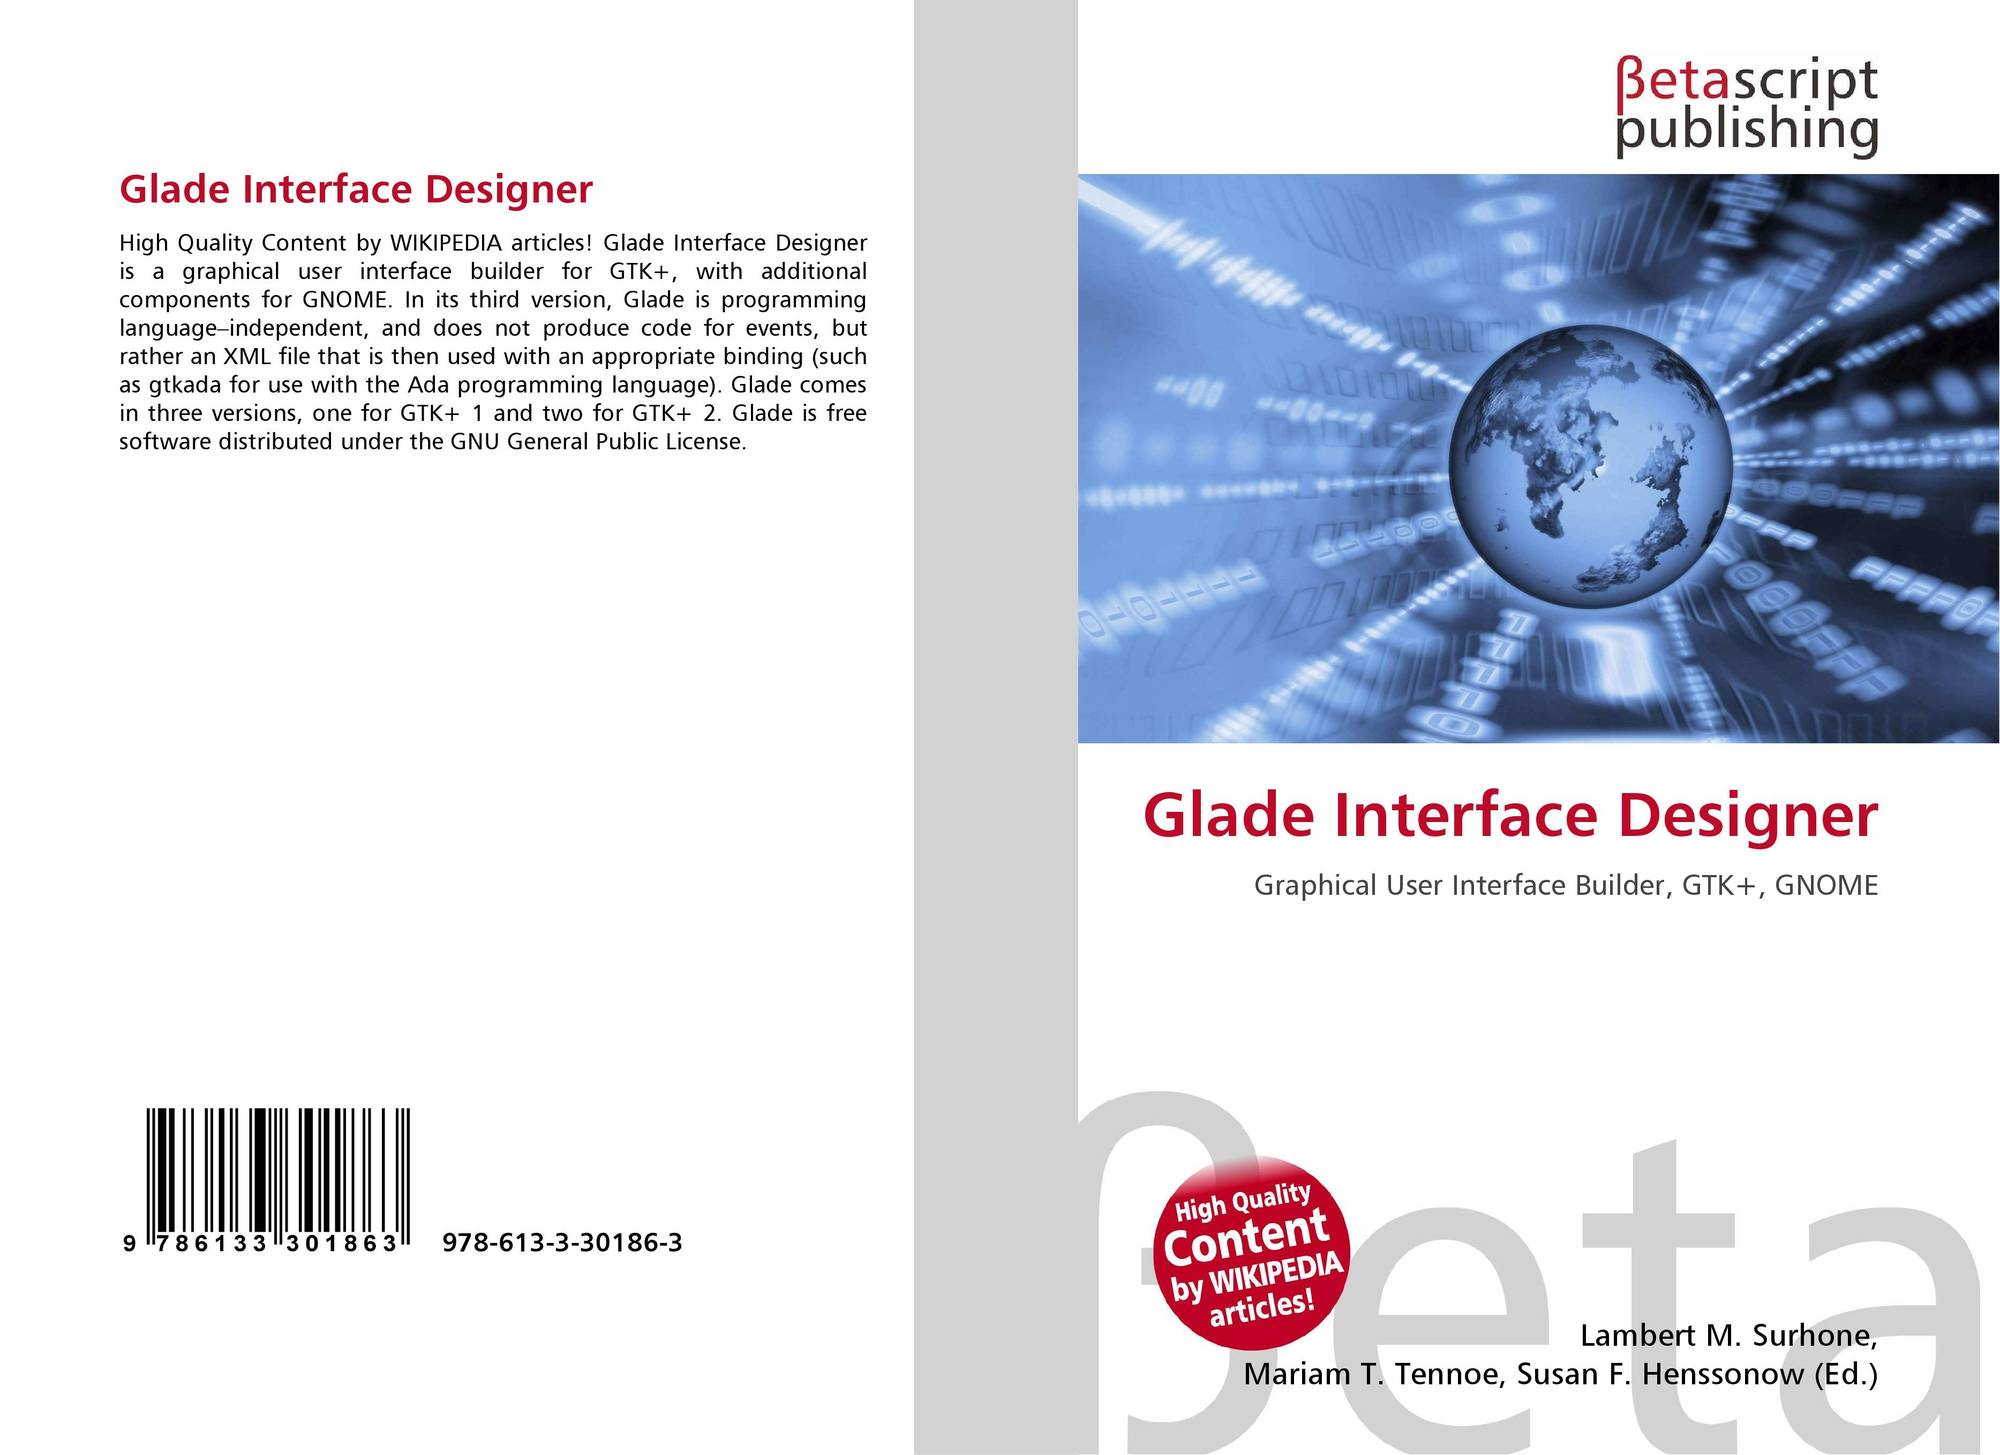 Glade Interface Designer, 978-613-3-30186-3, 6133301864